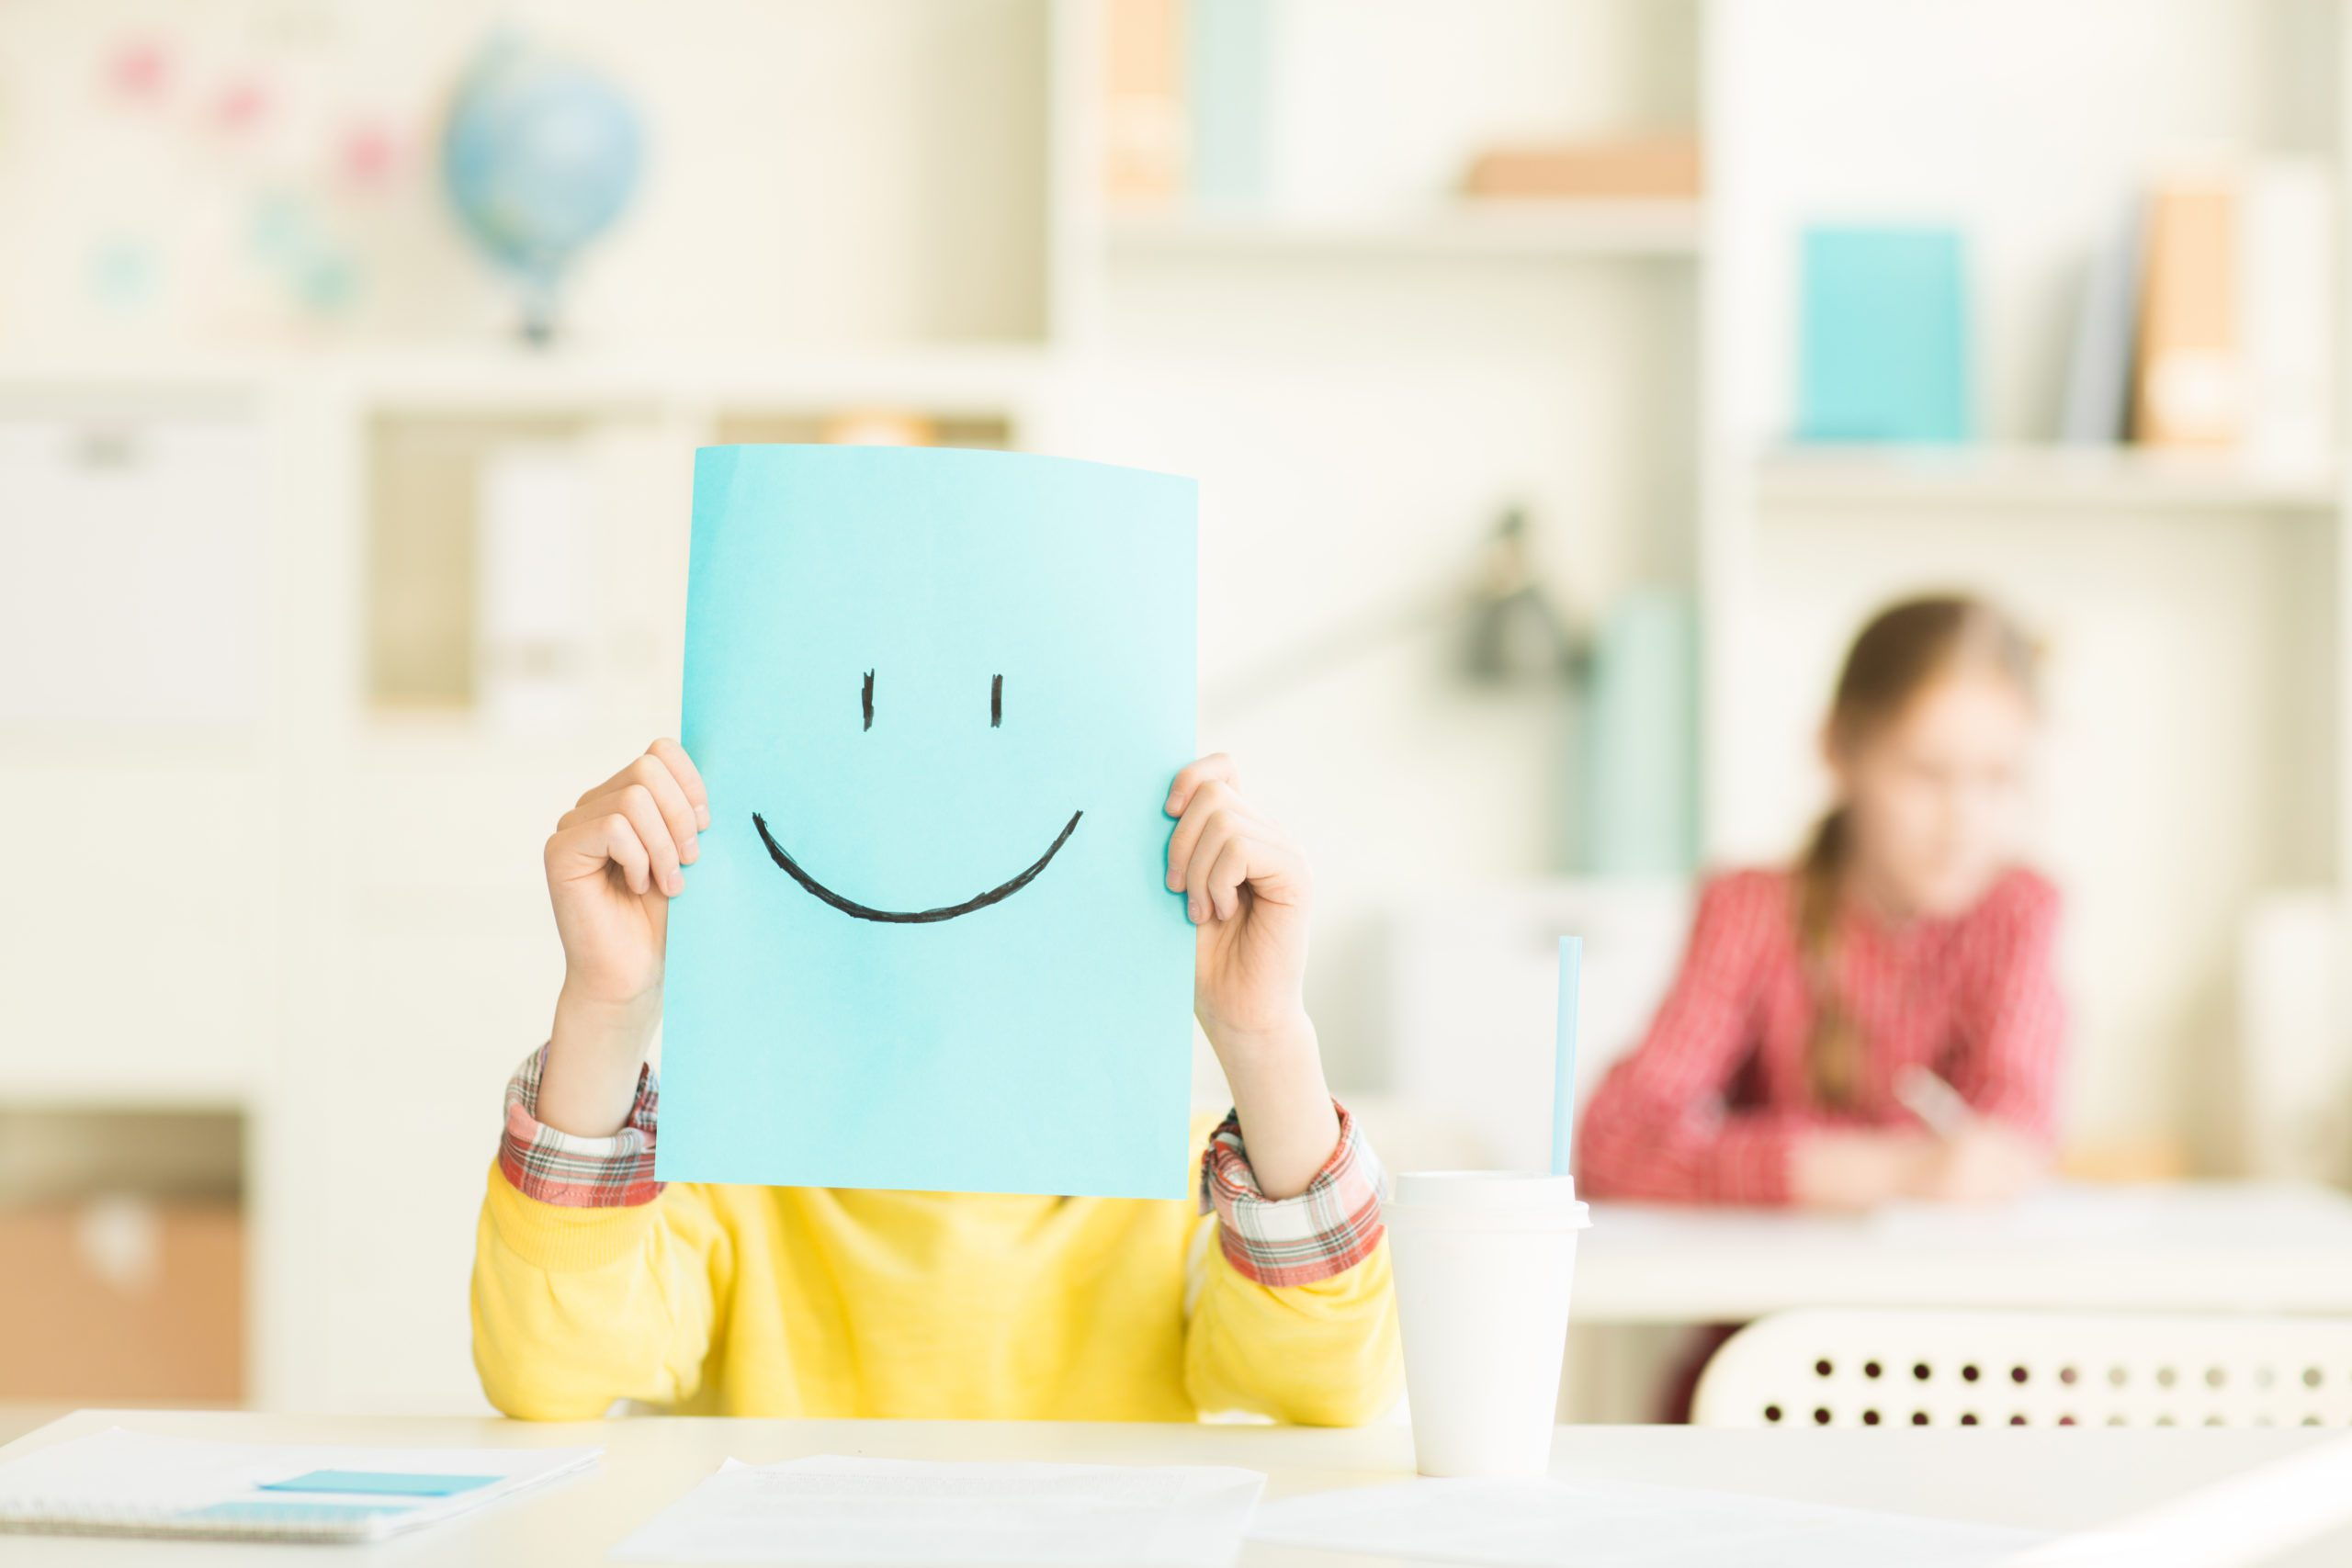 Schoolboy holding sheet of paper with drawn smile in front of his face at lesson